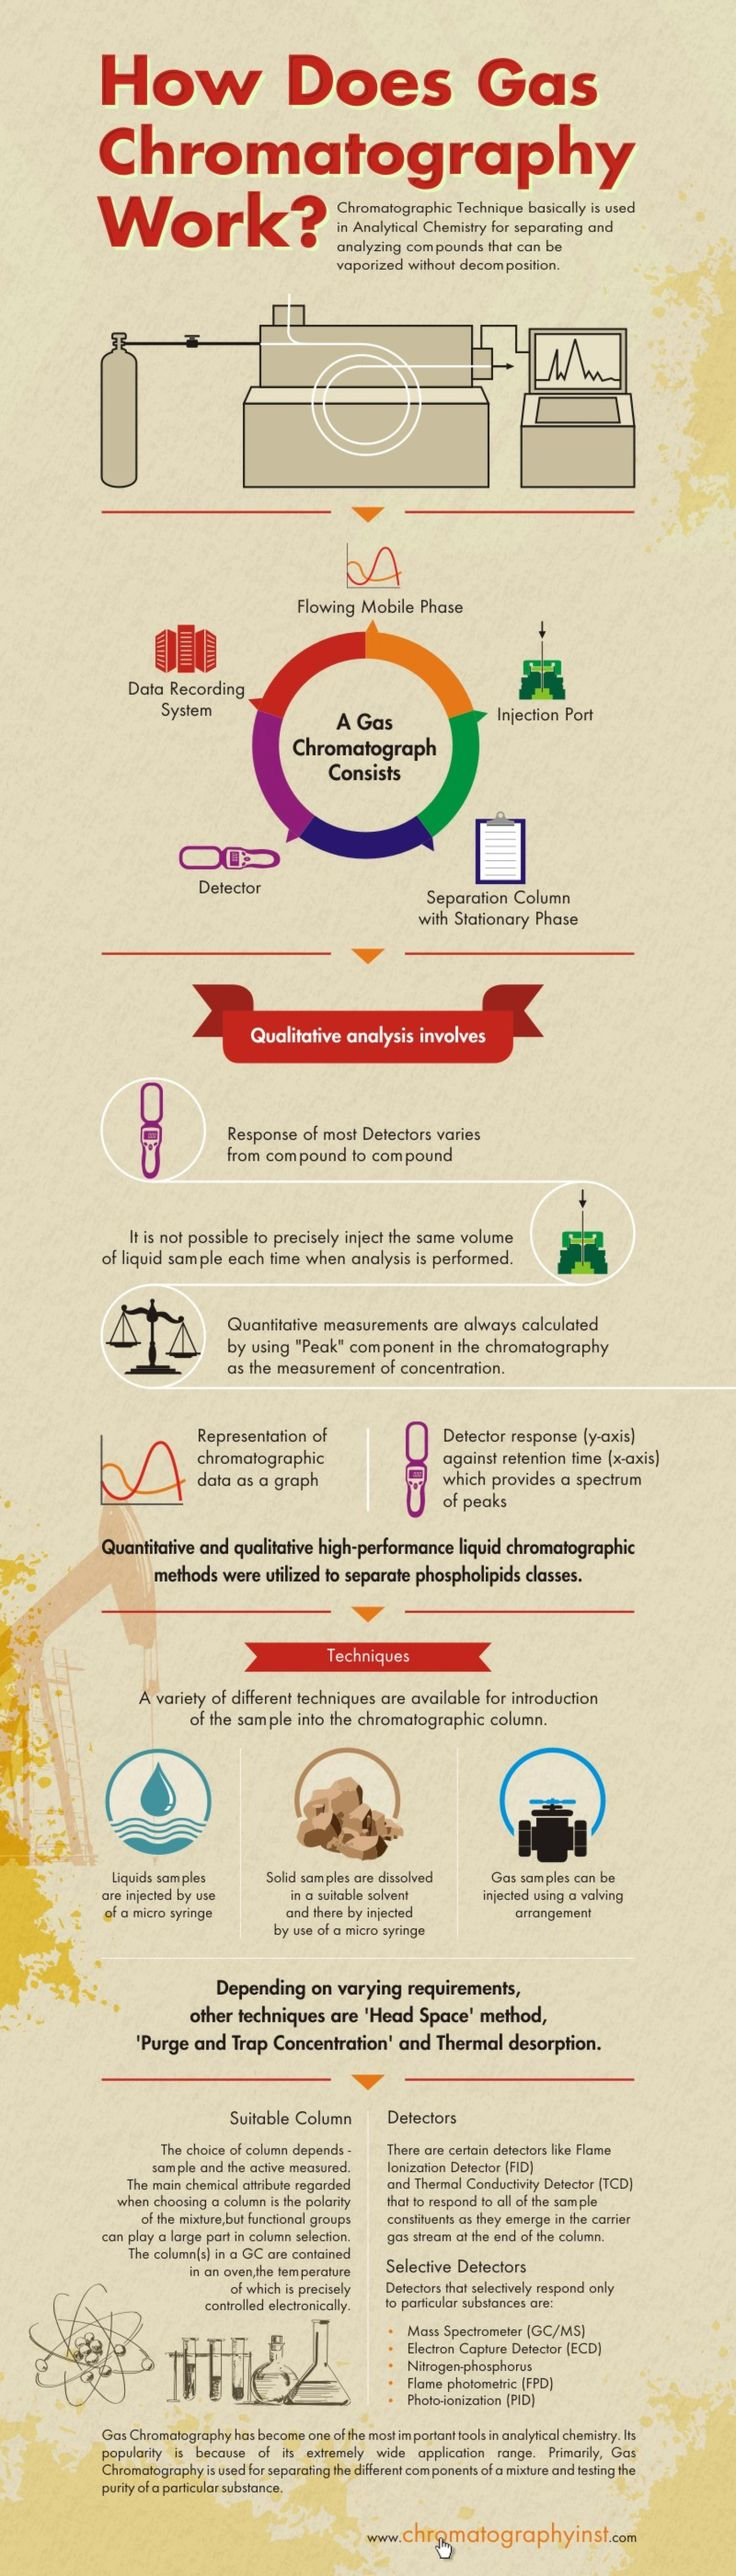 The Workings Of Gas Chromatography |via Chromatographyinst.com